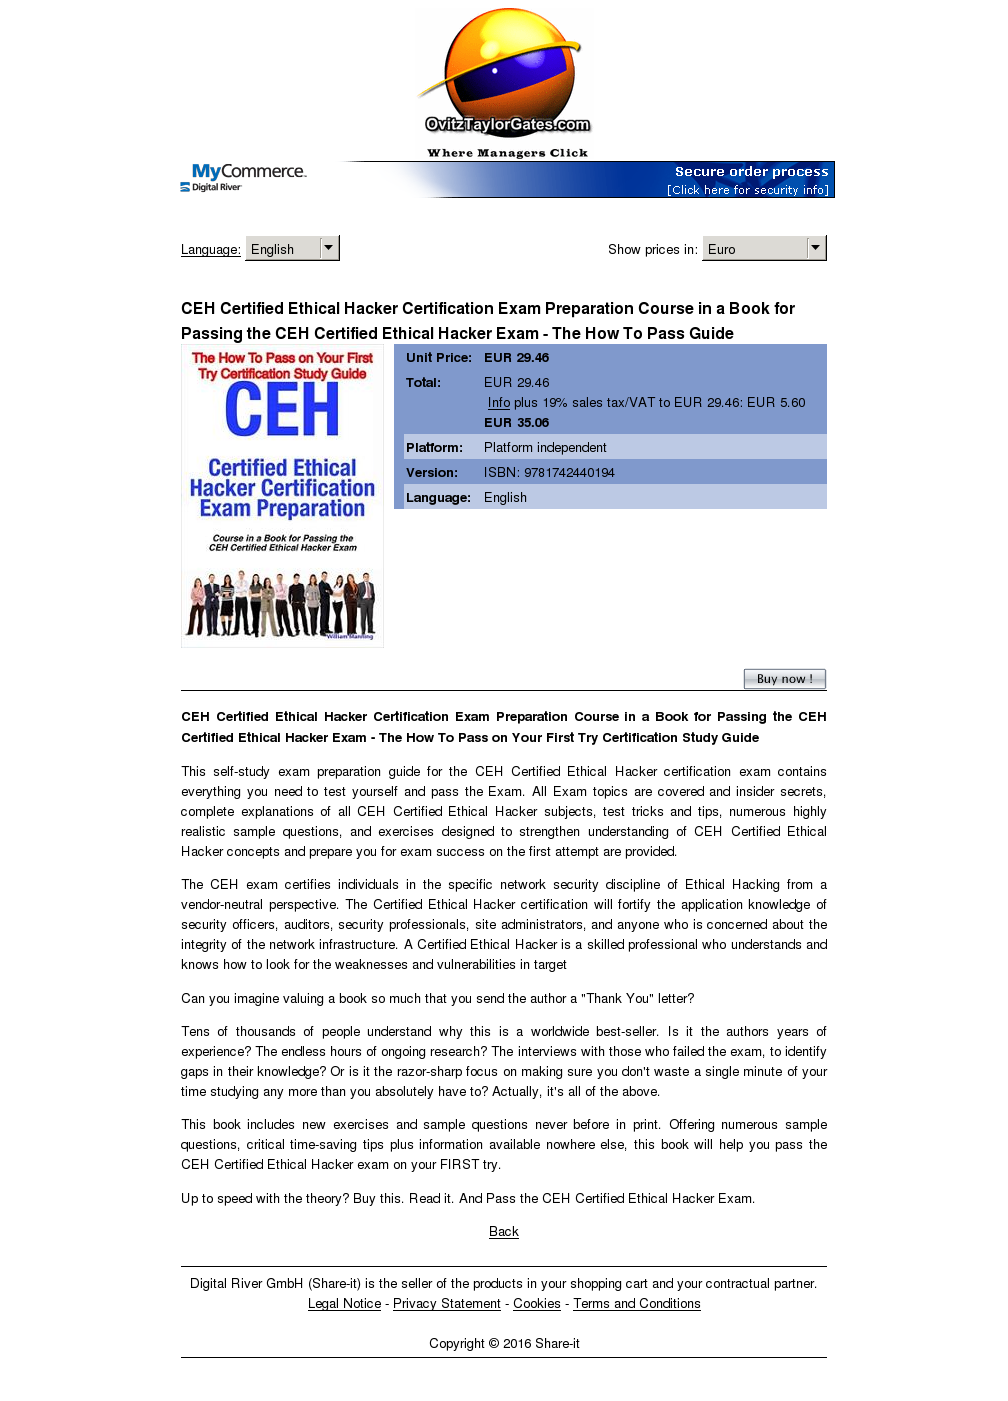 Ceh Certified Ethical Hacker Certification Exam Preparation Course Book Passing How Pass Guide